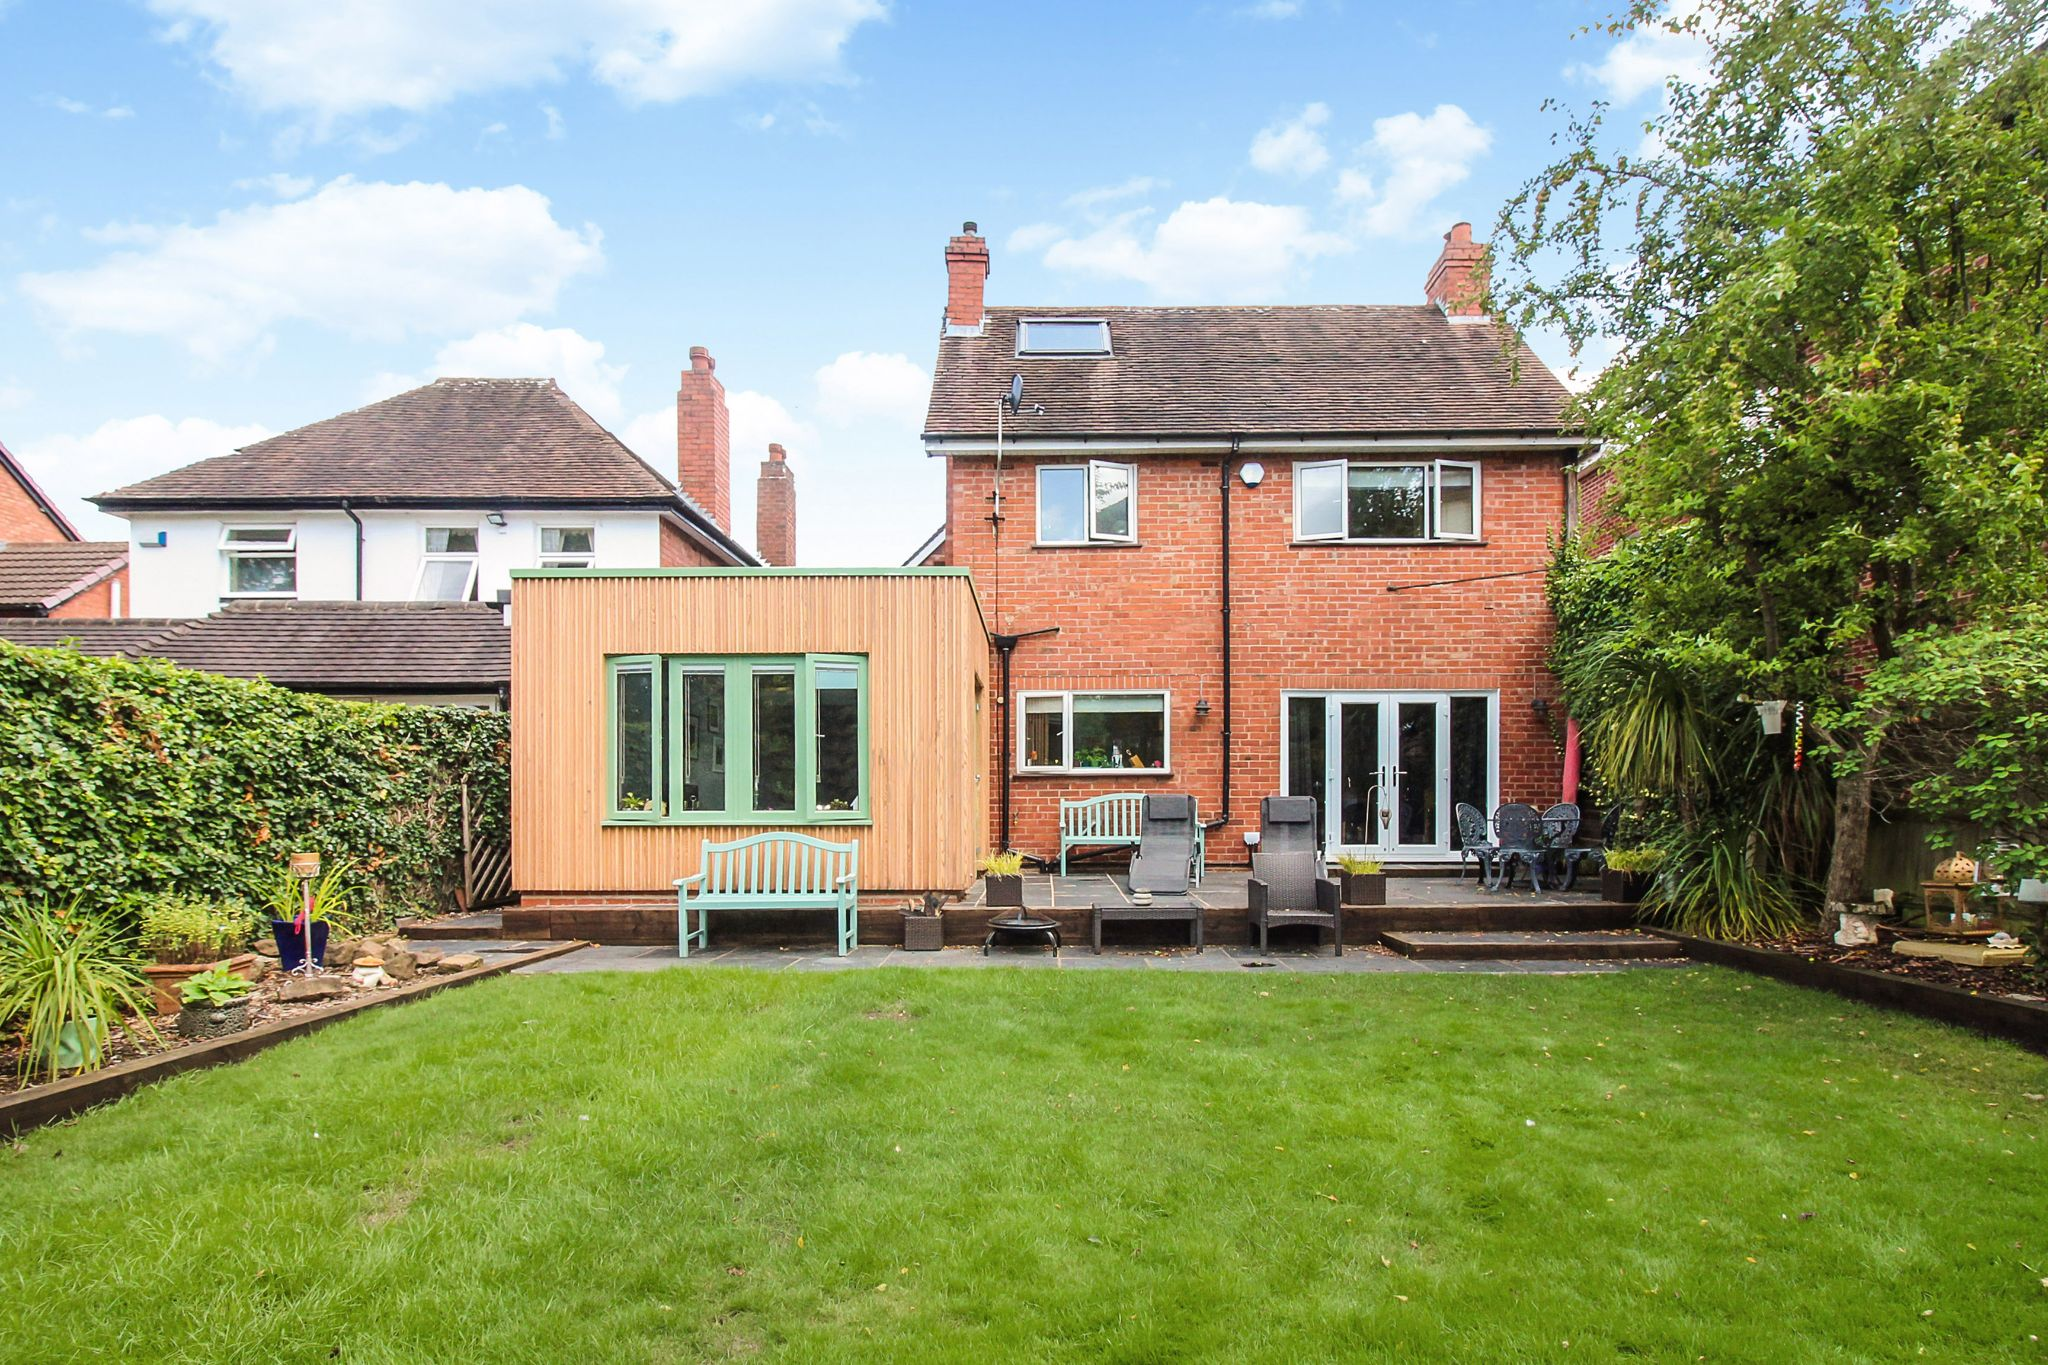 4 bedroom detached house For Sale in Solihull - Photograph 19.